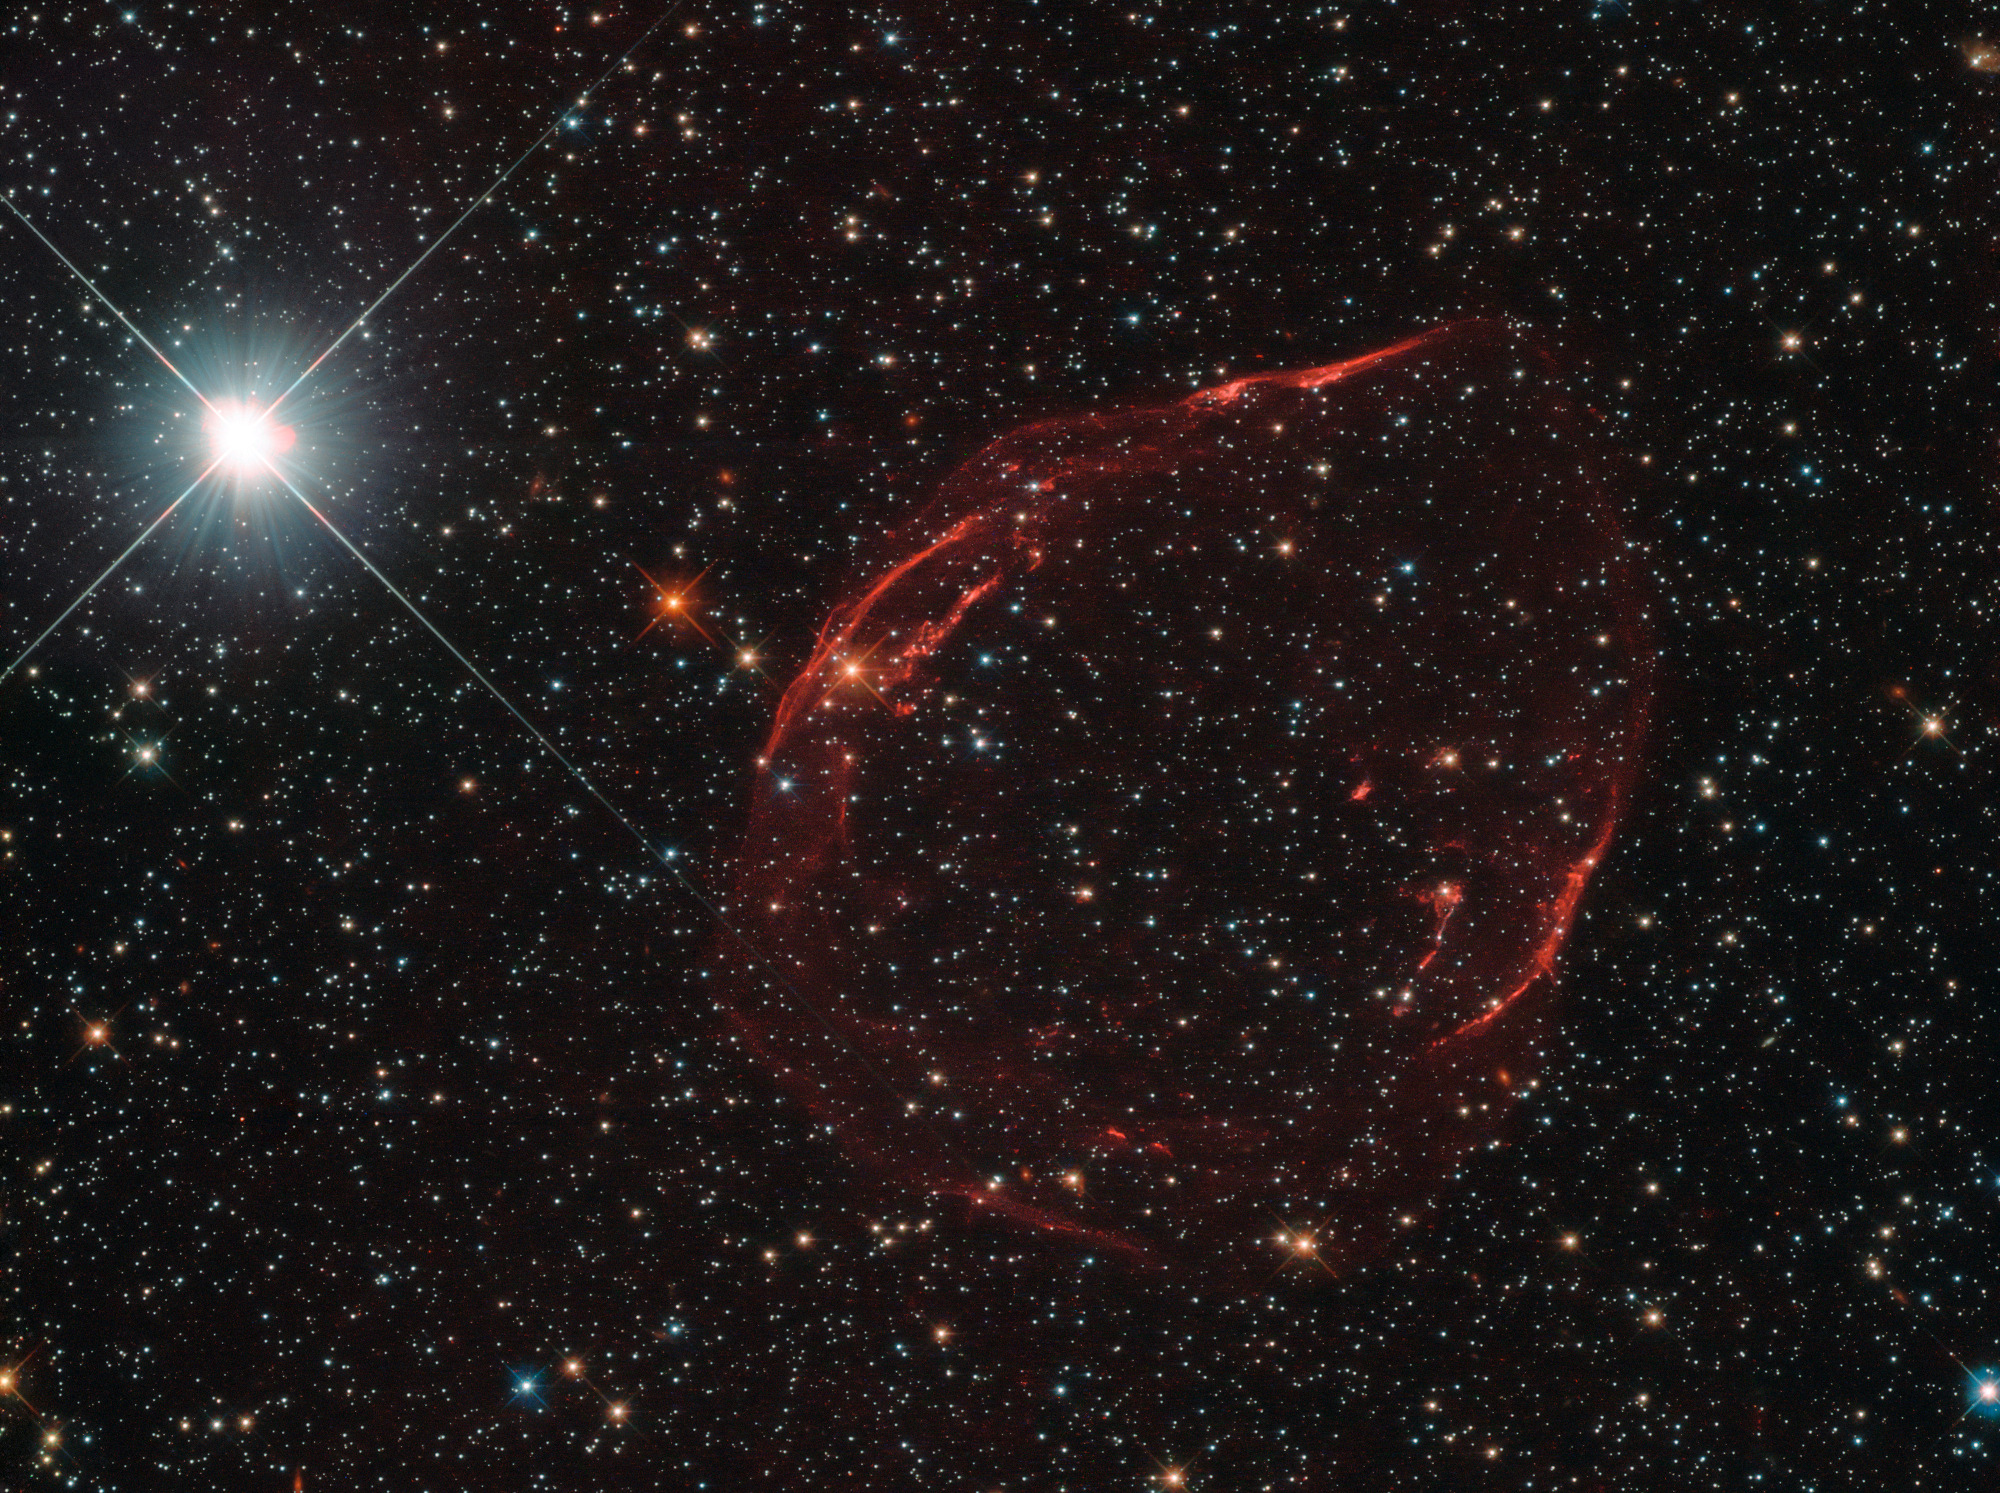 DEM L71 is a supernova remnant (α=05h05.7m, δ=-67°53' J2000) located about 160,000 light-years away in the Large Magellanic Cloud, a close neighbouring galaxy in the far southern constellation of Dorado (the swordfish). This image captured with the NASA/ESA Hubble Space Telescope is just 2.68 x 2.0arcminutes wide. Click the picture for a larger-scale version. Image credit: ESA/Hubble & NASA, Y. Chu.